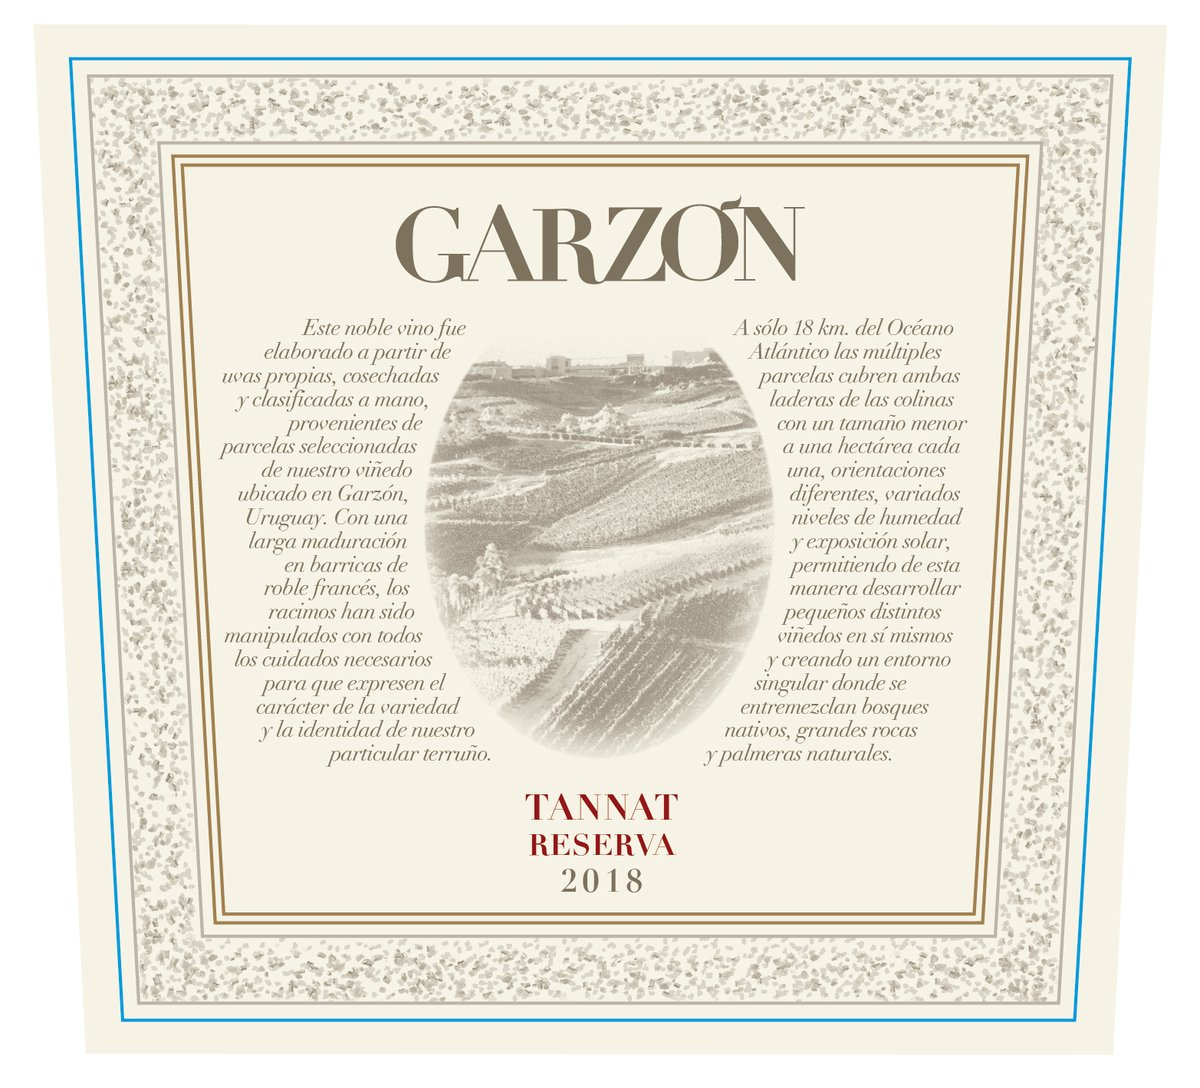 The @BodegaGarzon 2018 Reserva Tannat is frisky with turmeric and green-peppercorn scents, lasting on meaty dark fruit. Structured and savory, this will age well over the next several years, or decant it now for a salad of duck confit. #WandSSpotlight https://t.co/UfSI8IalVP https://t.co/J4oeRgJUB1